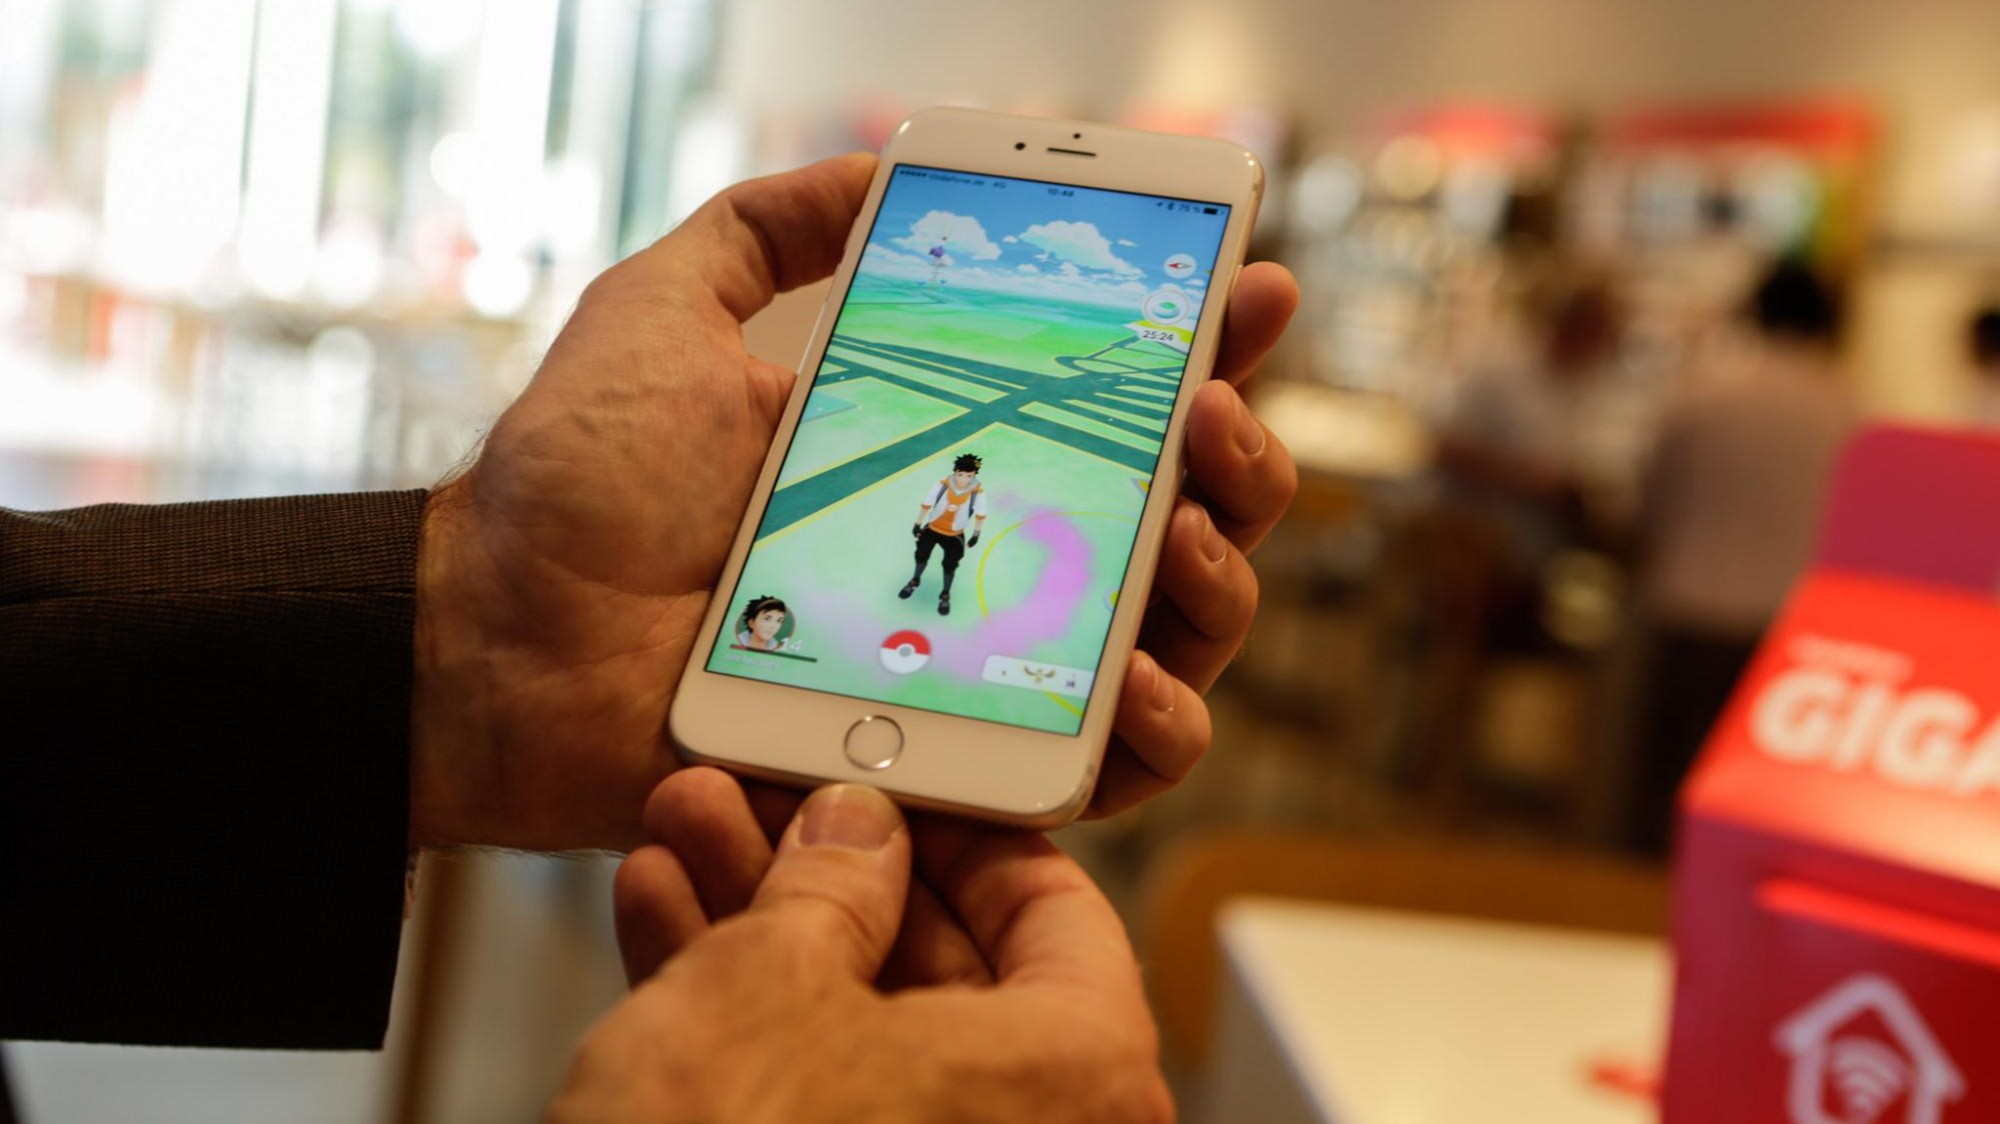 Pokémon Go' Anti-Cheating Tactics Prevent Disabled People